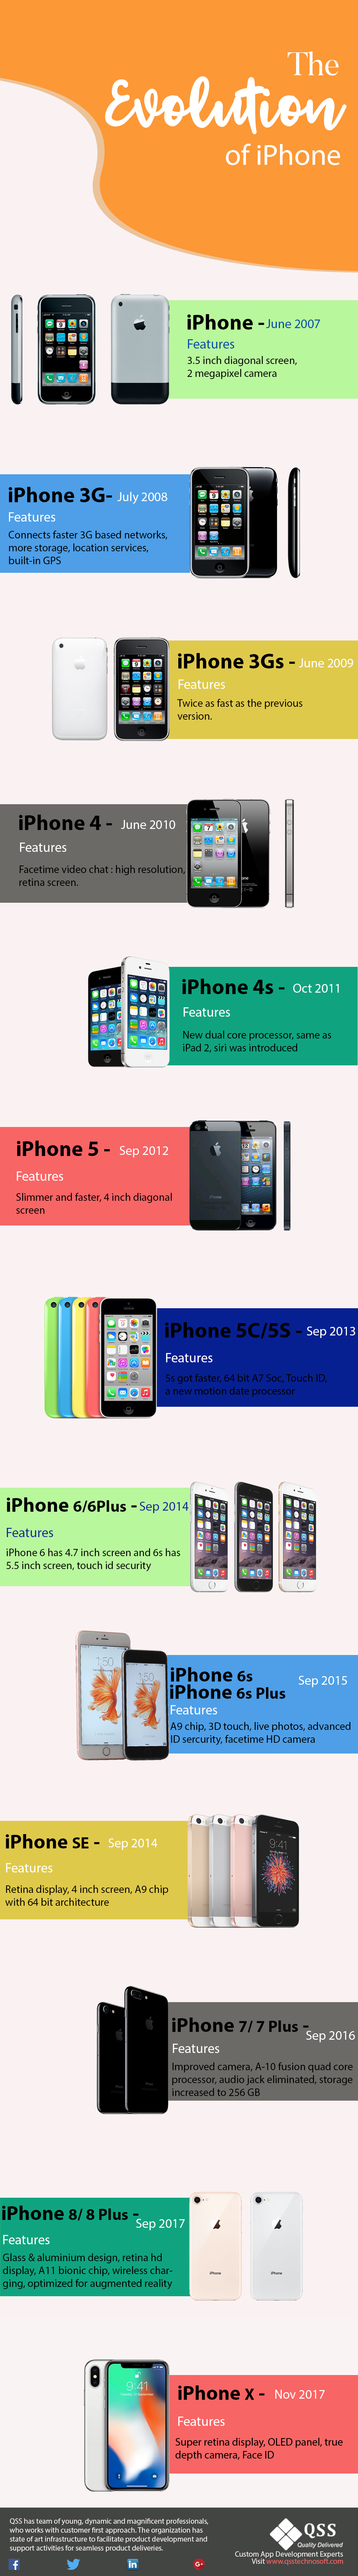 Infographic - iphone